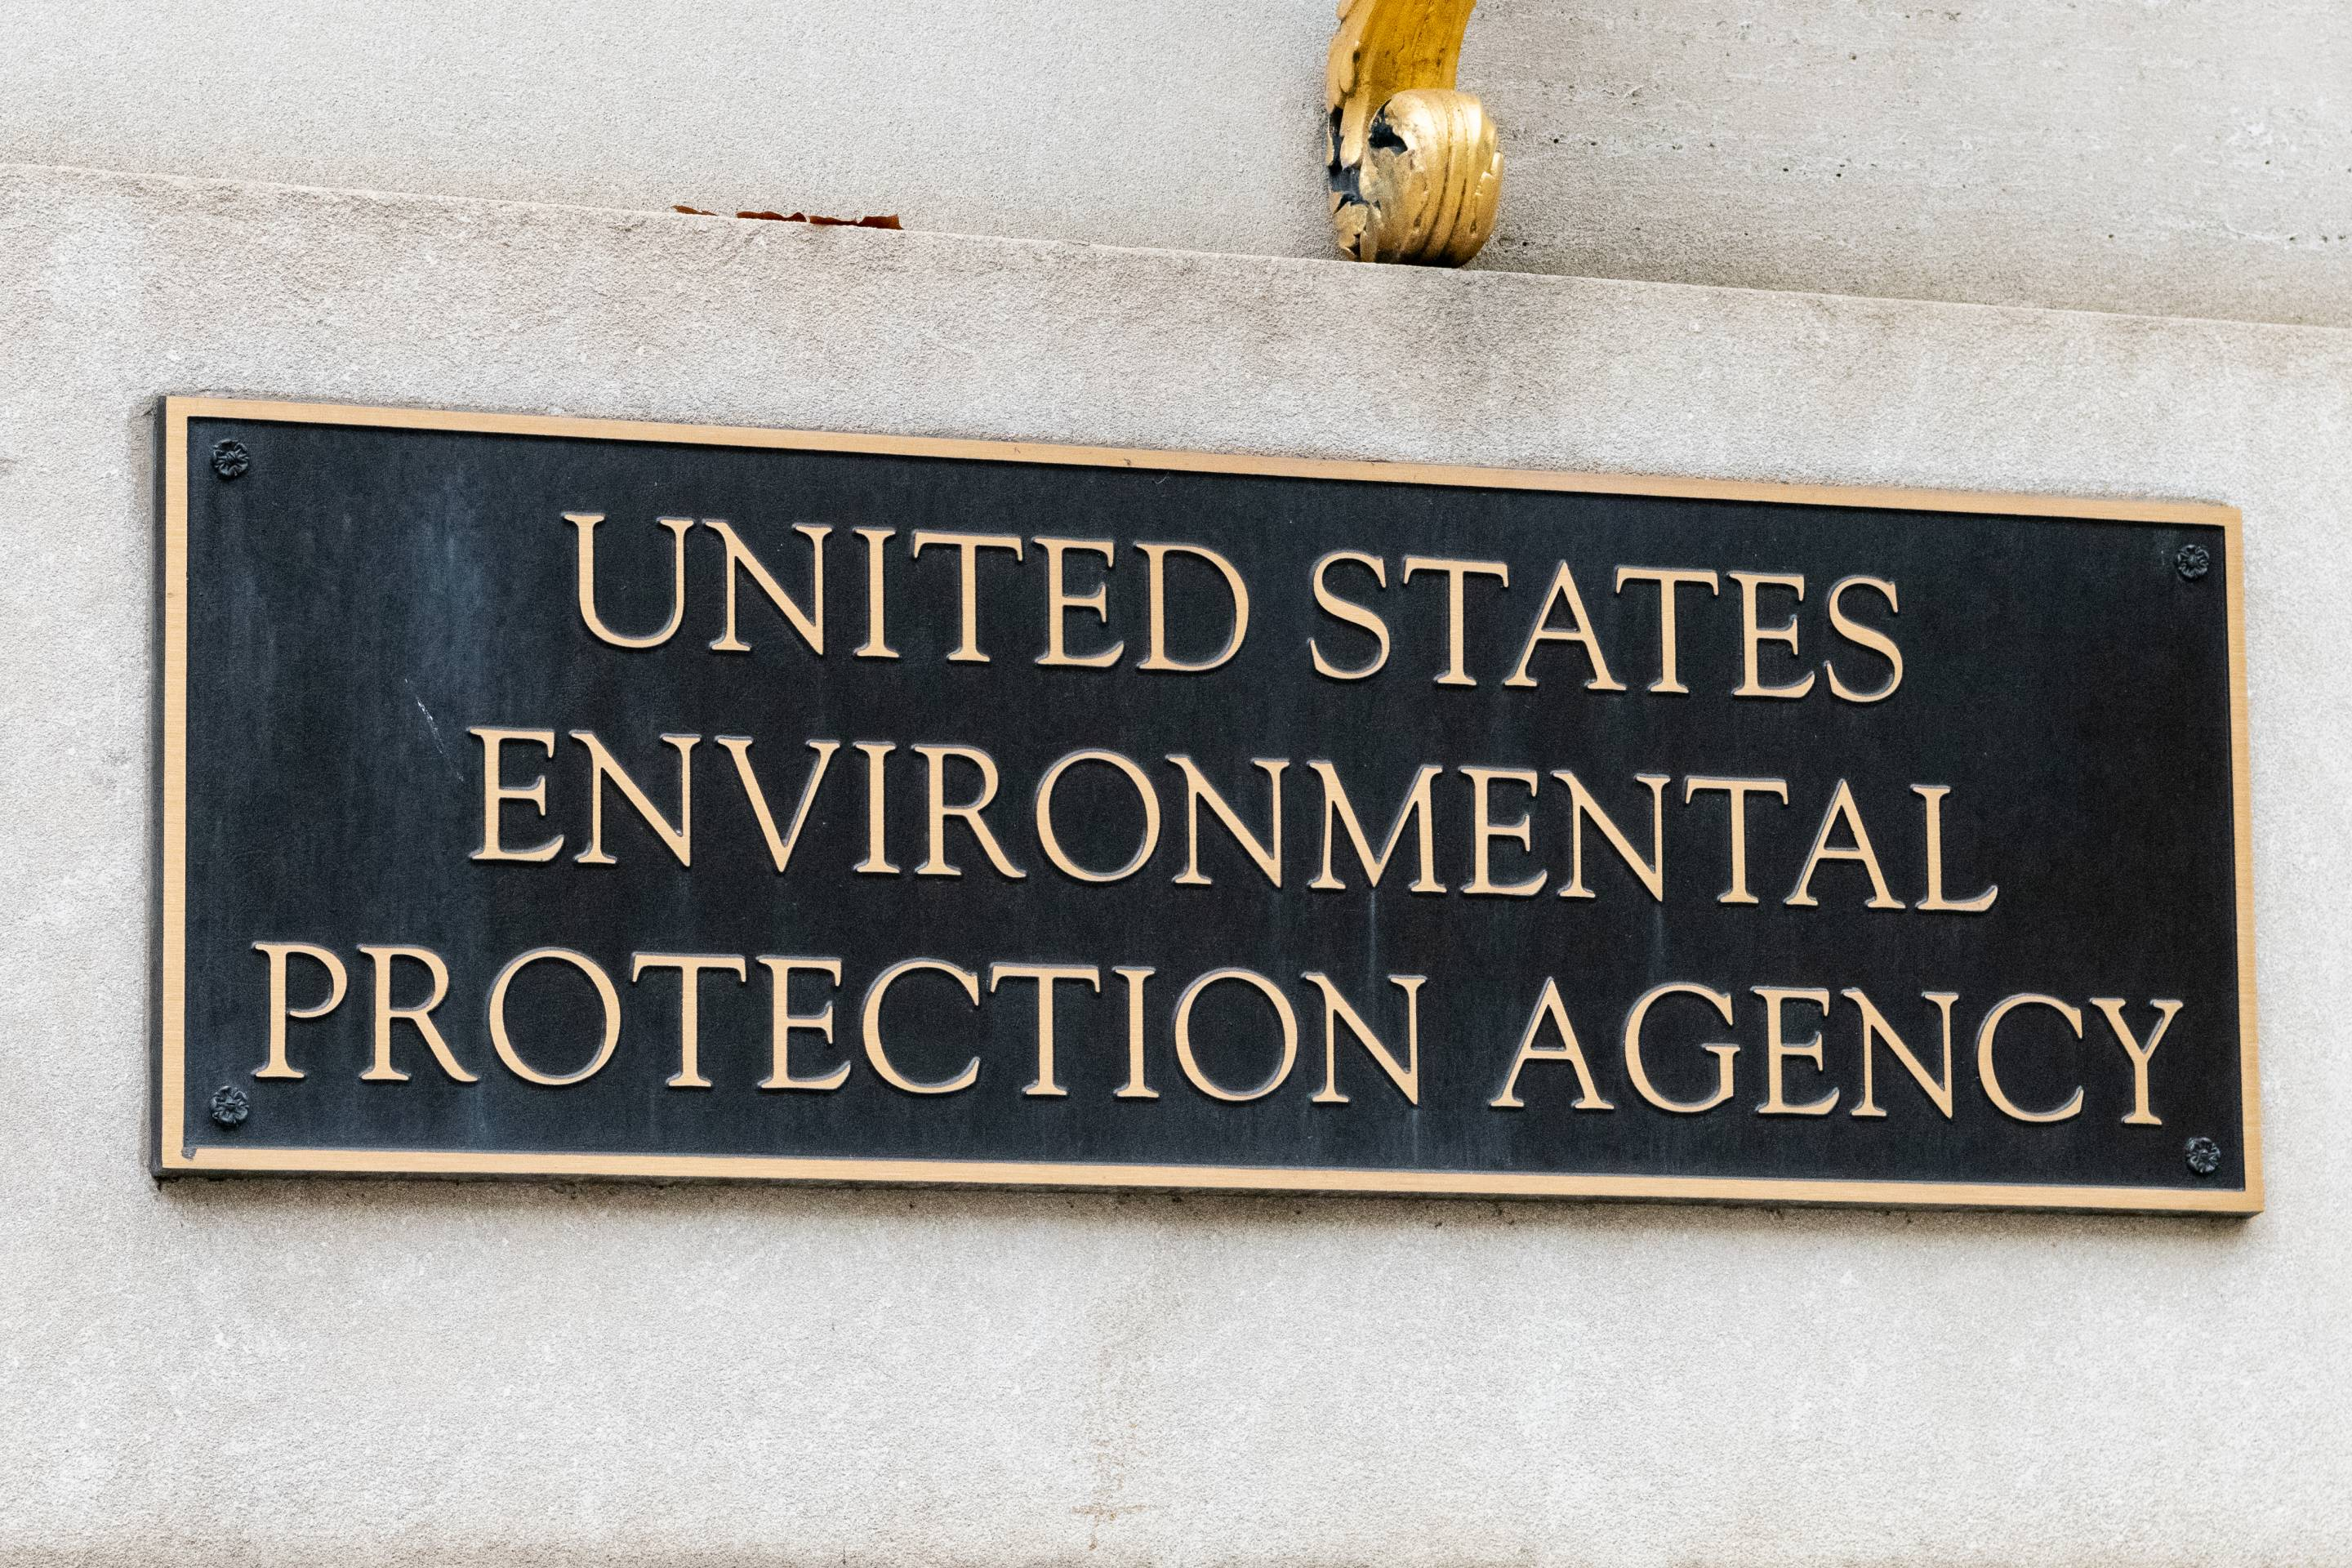 The Environmental Protection Agency sign in Washington, D.C